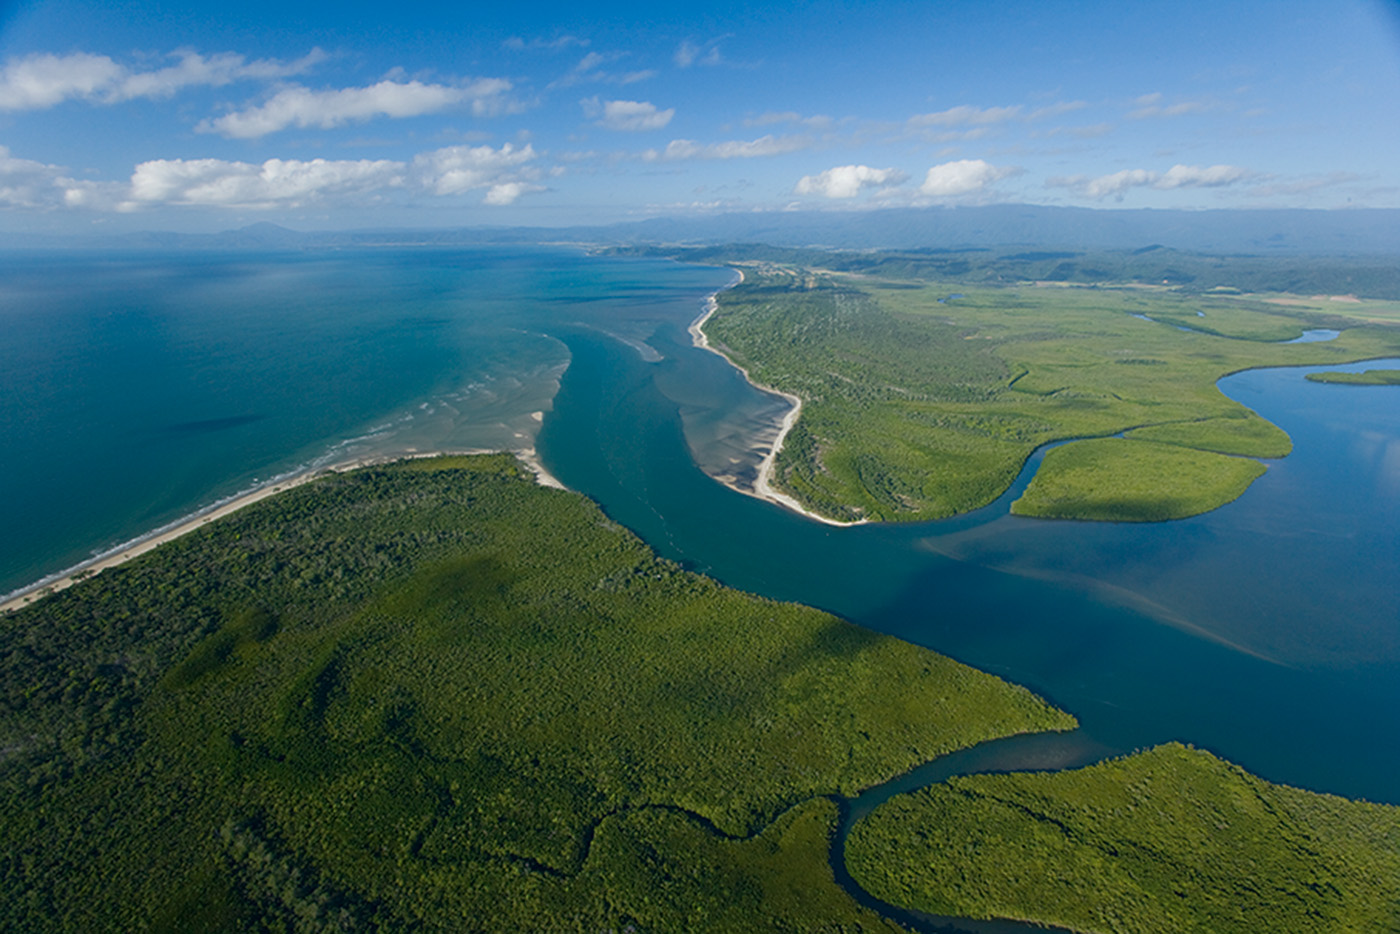 Aerial photo of the mouth of the Daintree River